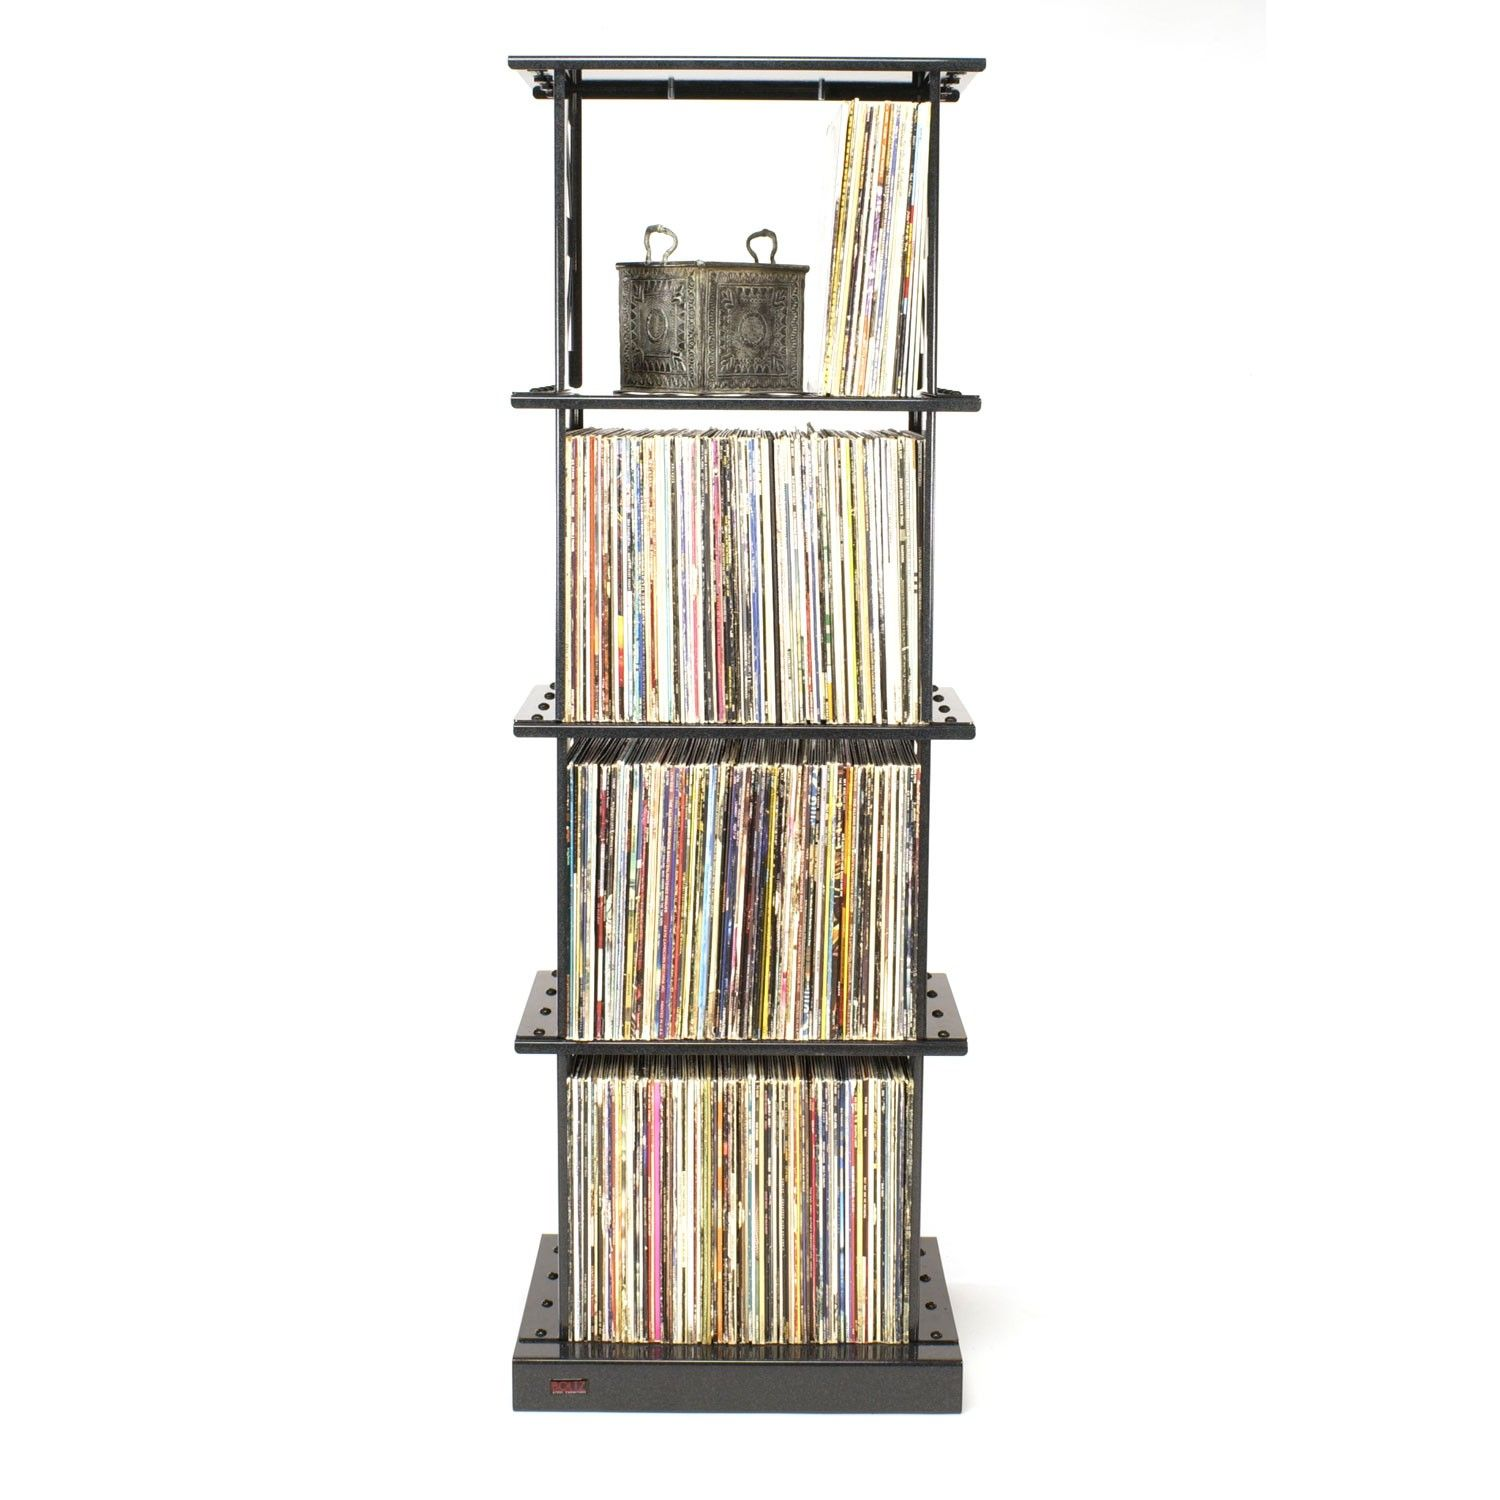 Steel LP Album Storage Rack (Designs From 1 To 4 Shelves) By Boltz Furniture